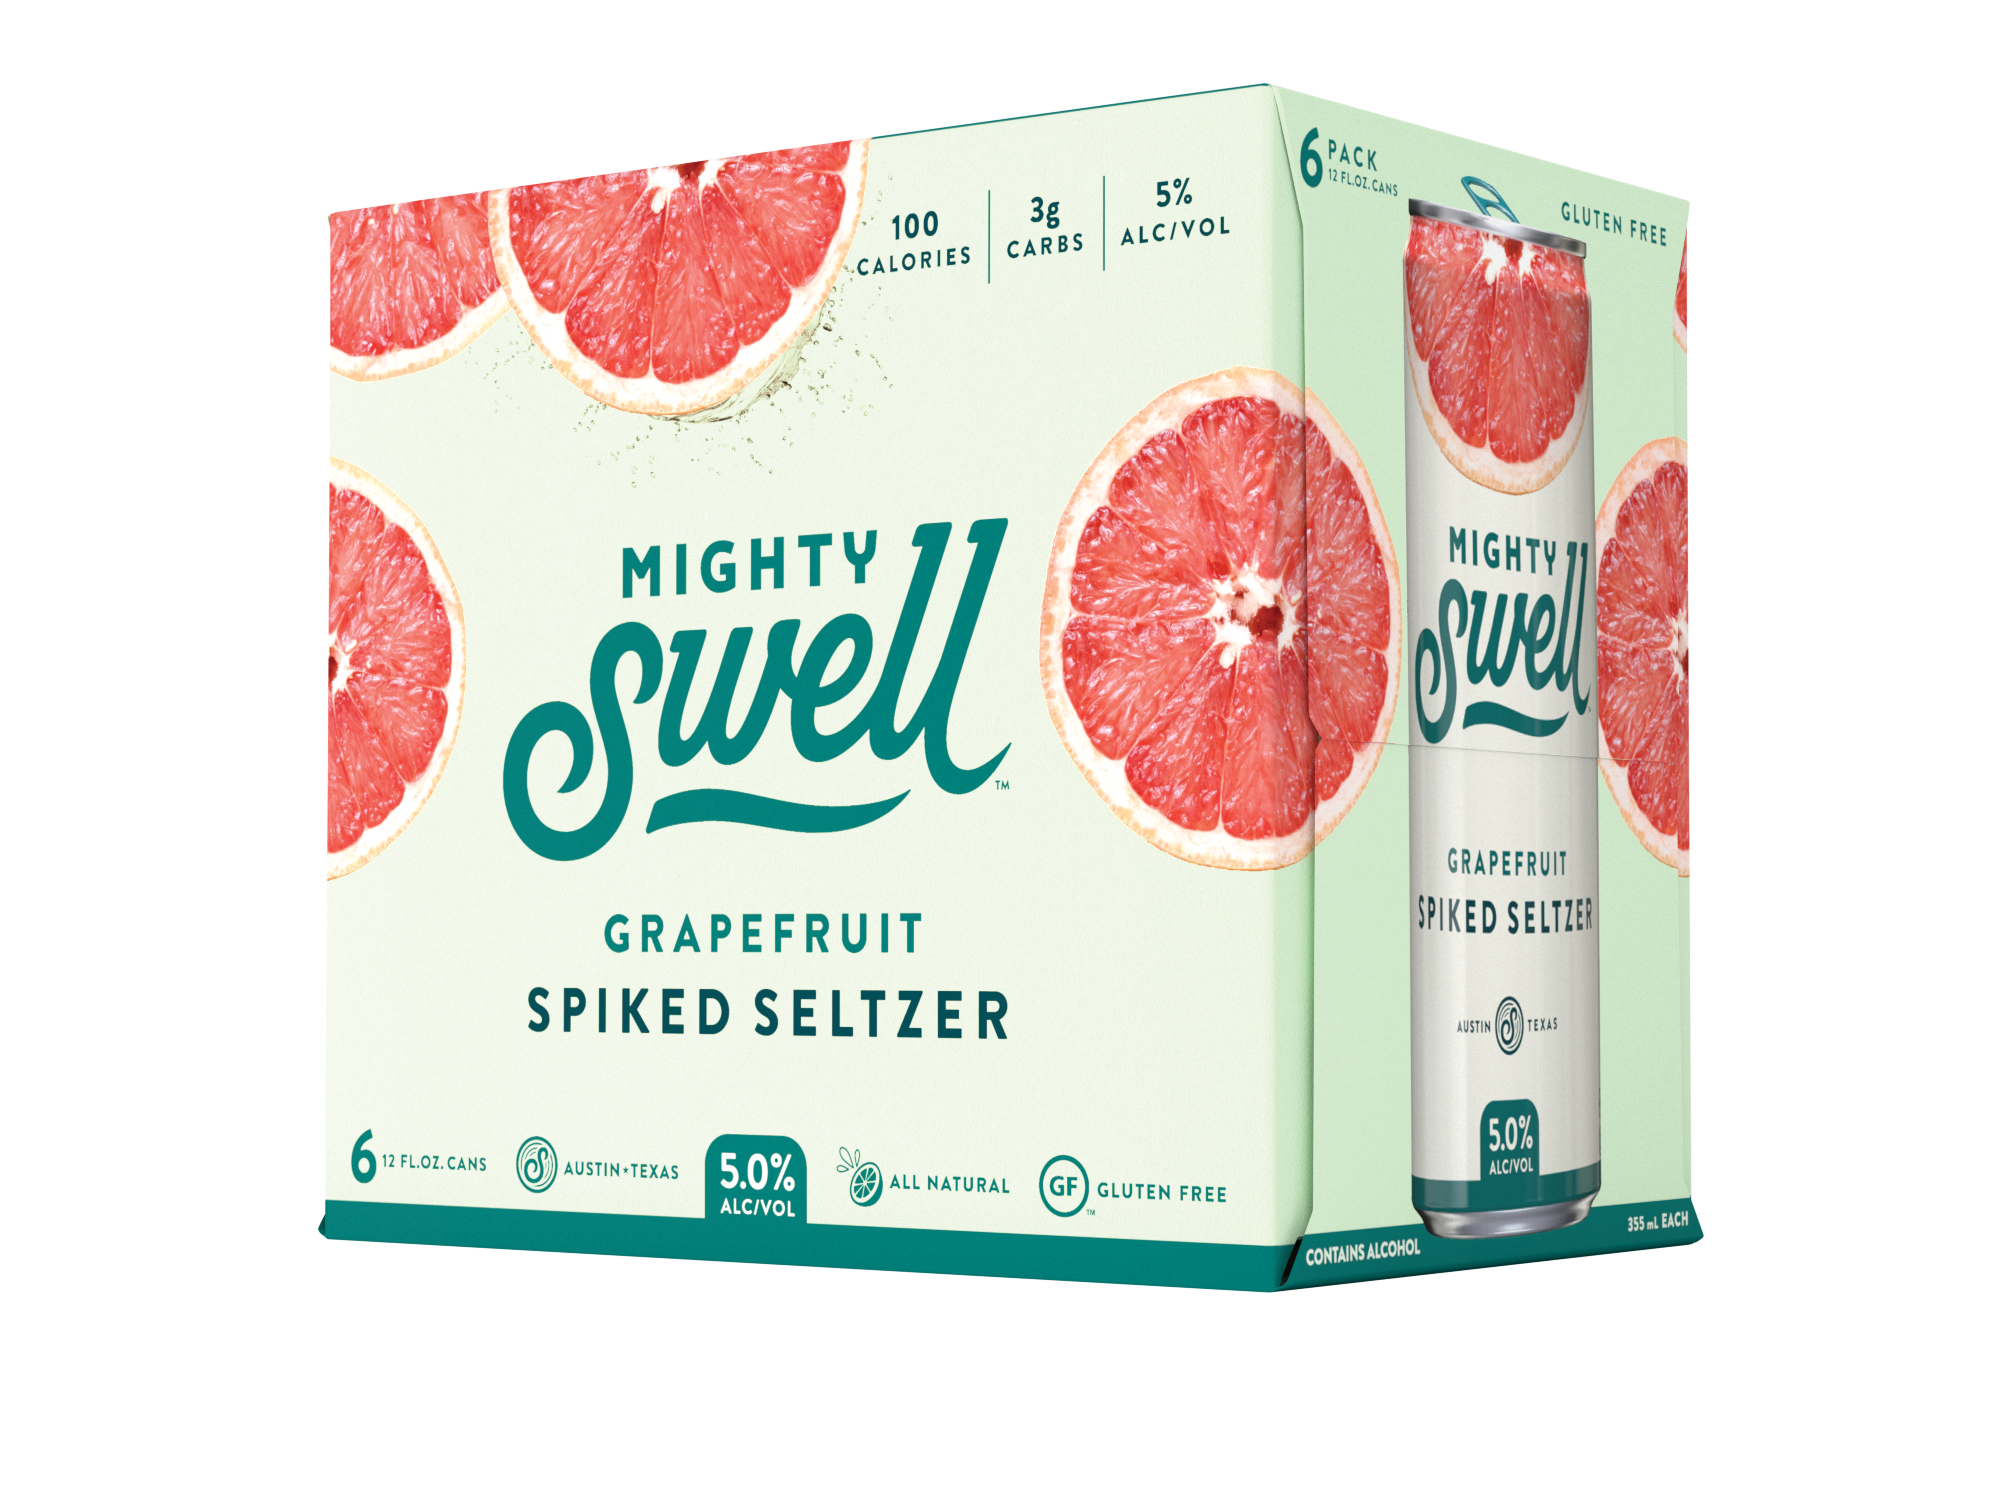 Mighty Swell Grapefruit Spiked Seltzer | 6 Pack